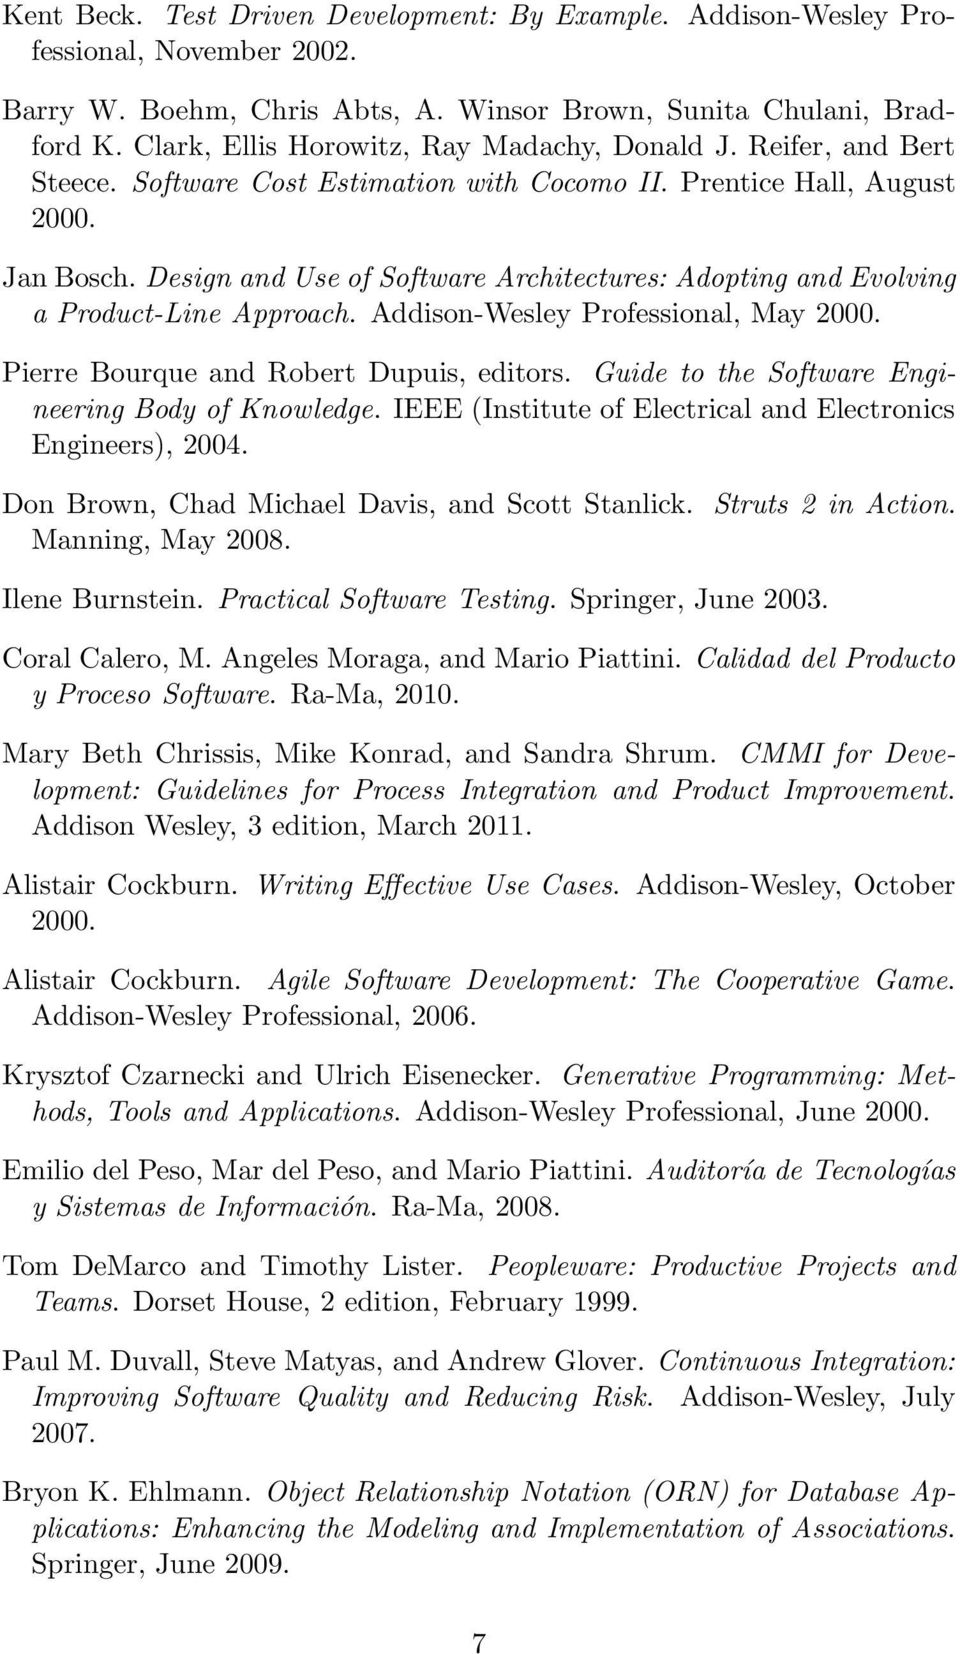 Design and Use of Software Architectures: Adopting and Evolving a Product-Line Approach. Addison-Wesley Professional, May 2000. Pierre Bourque and Robert Dupuis, editors.